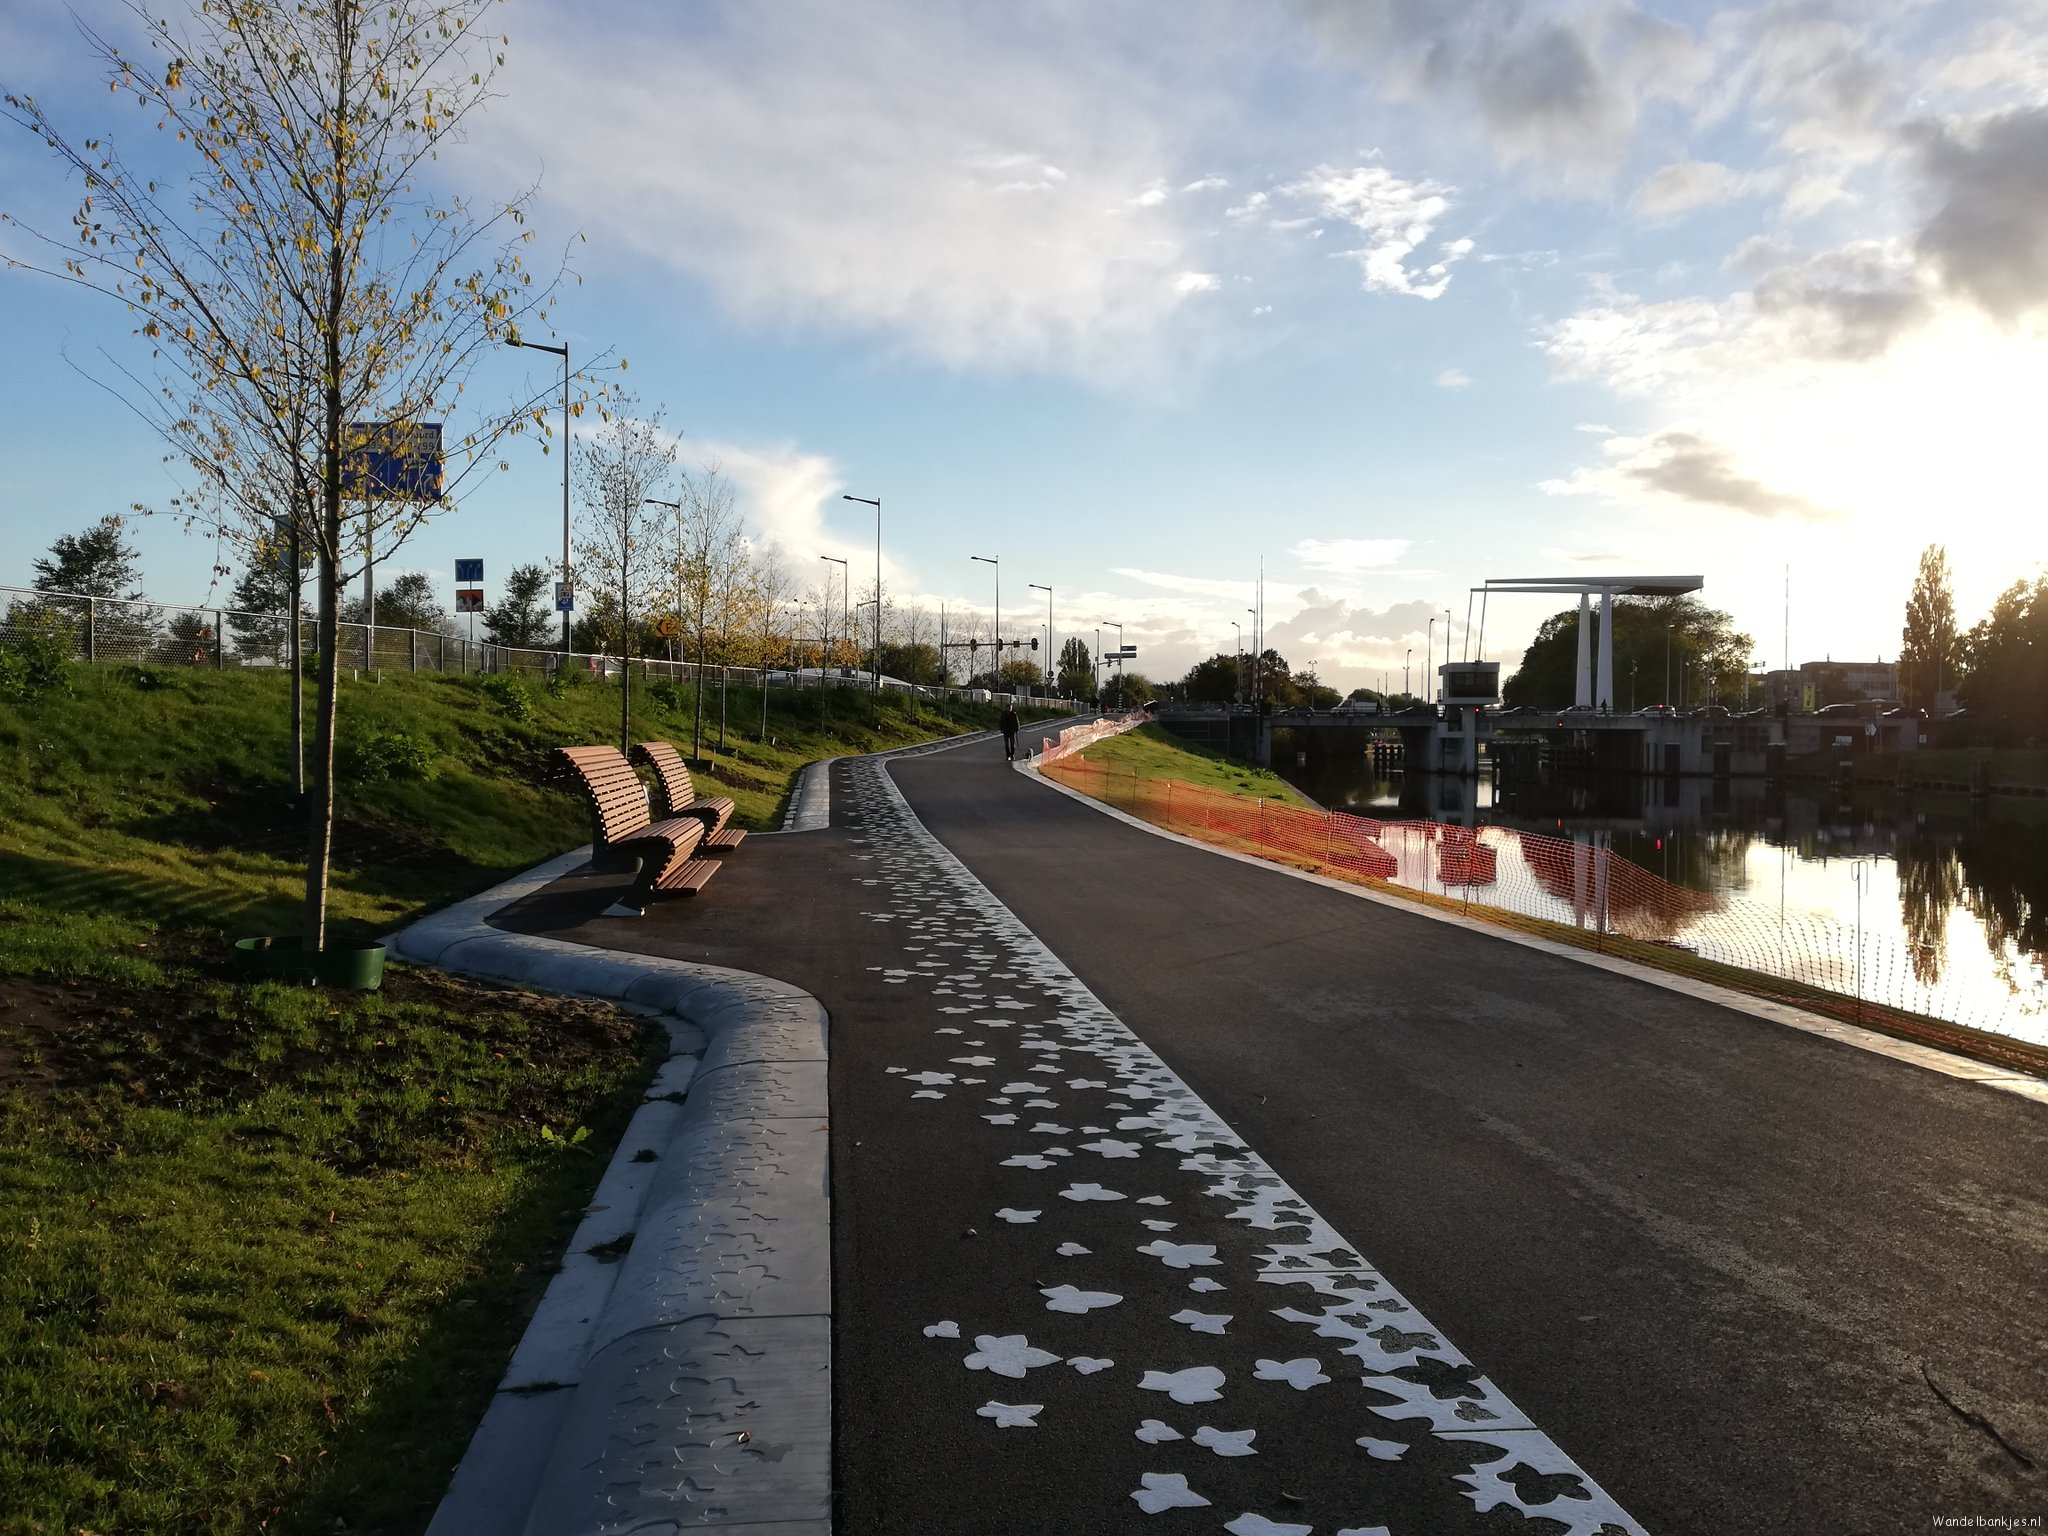 rt-walburgism-near-new-leeuwarderweg-amsterdam-noord-noordholandsch-channel-walking-couches-greenchange-https-t-co-7zeliggmbj